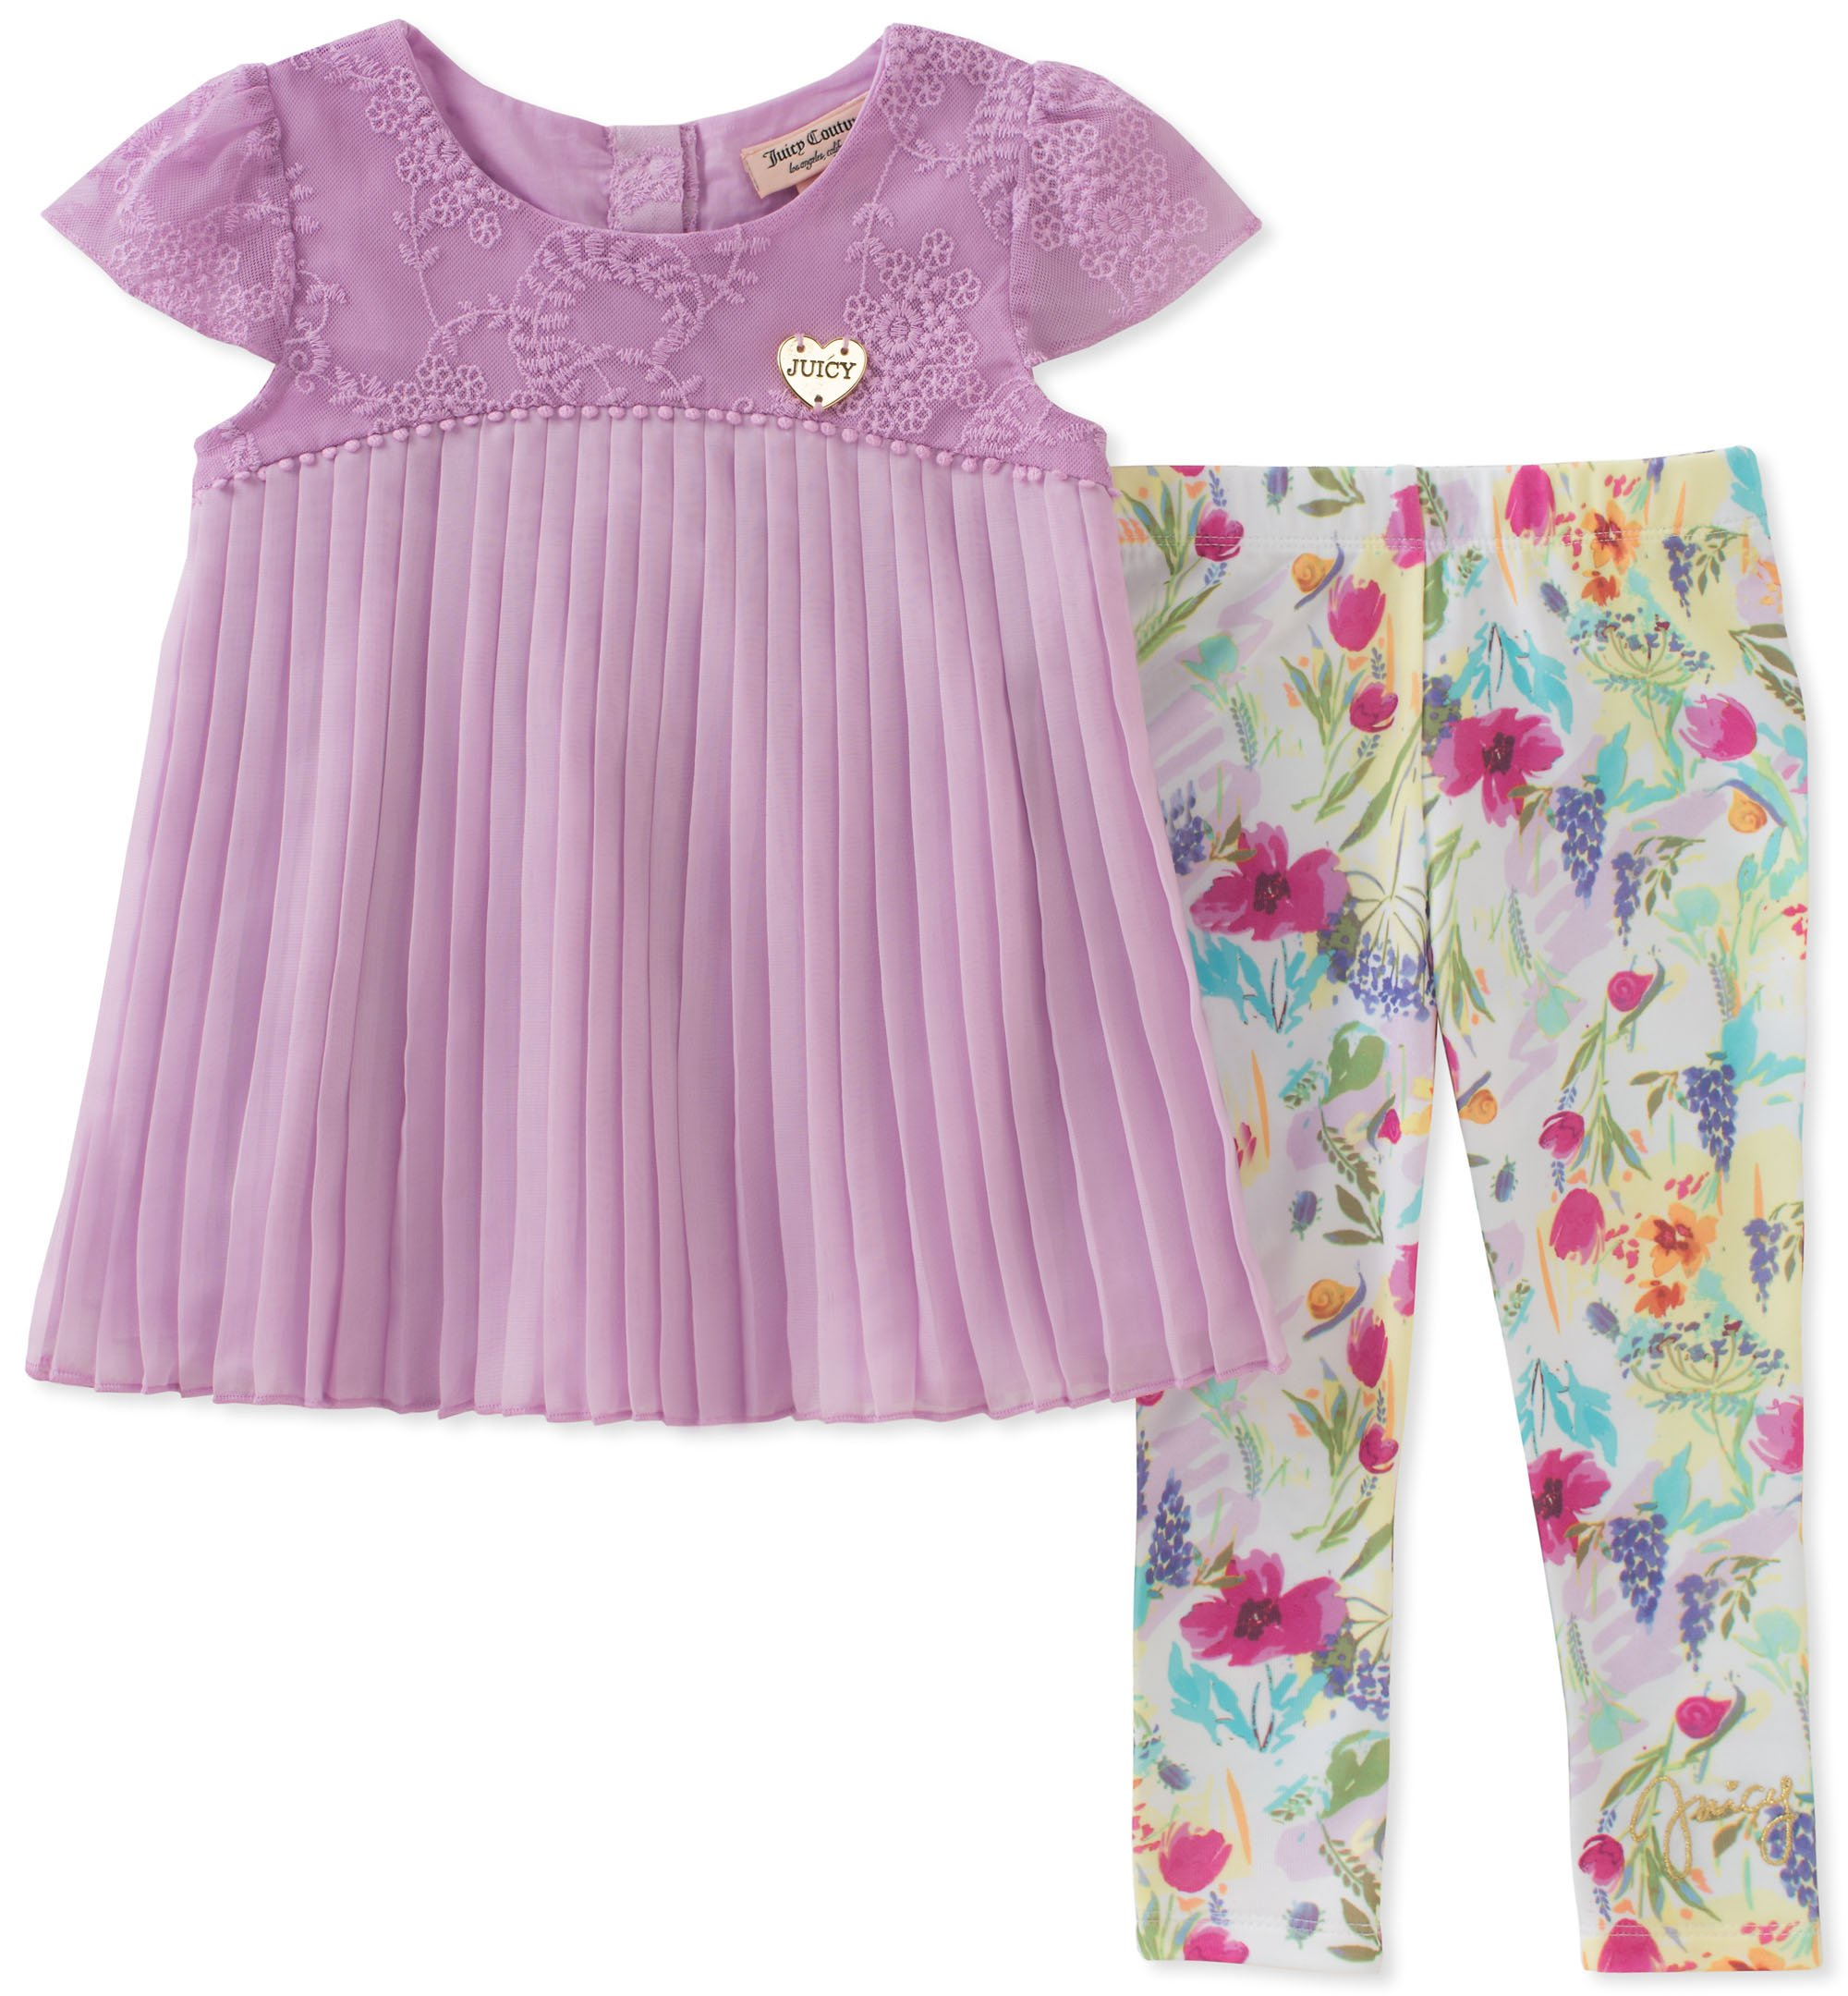 Juicy Couture Baby Girls 2 Pieces Tunic Set, Lilac/Print, 18M